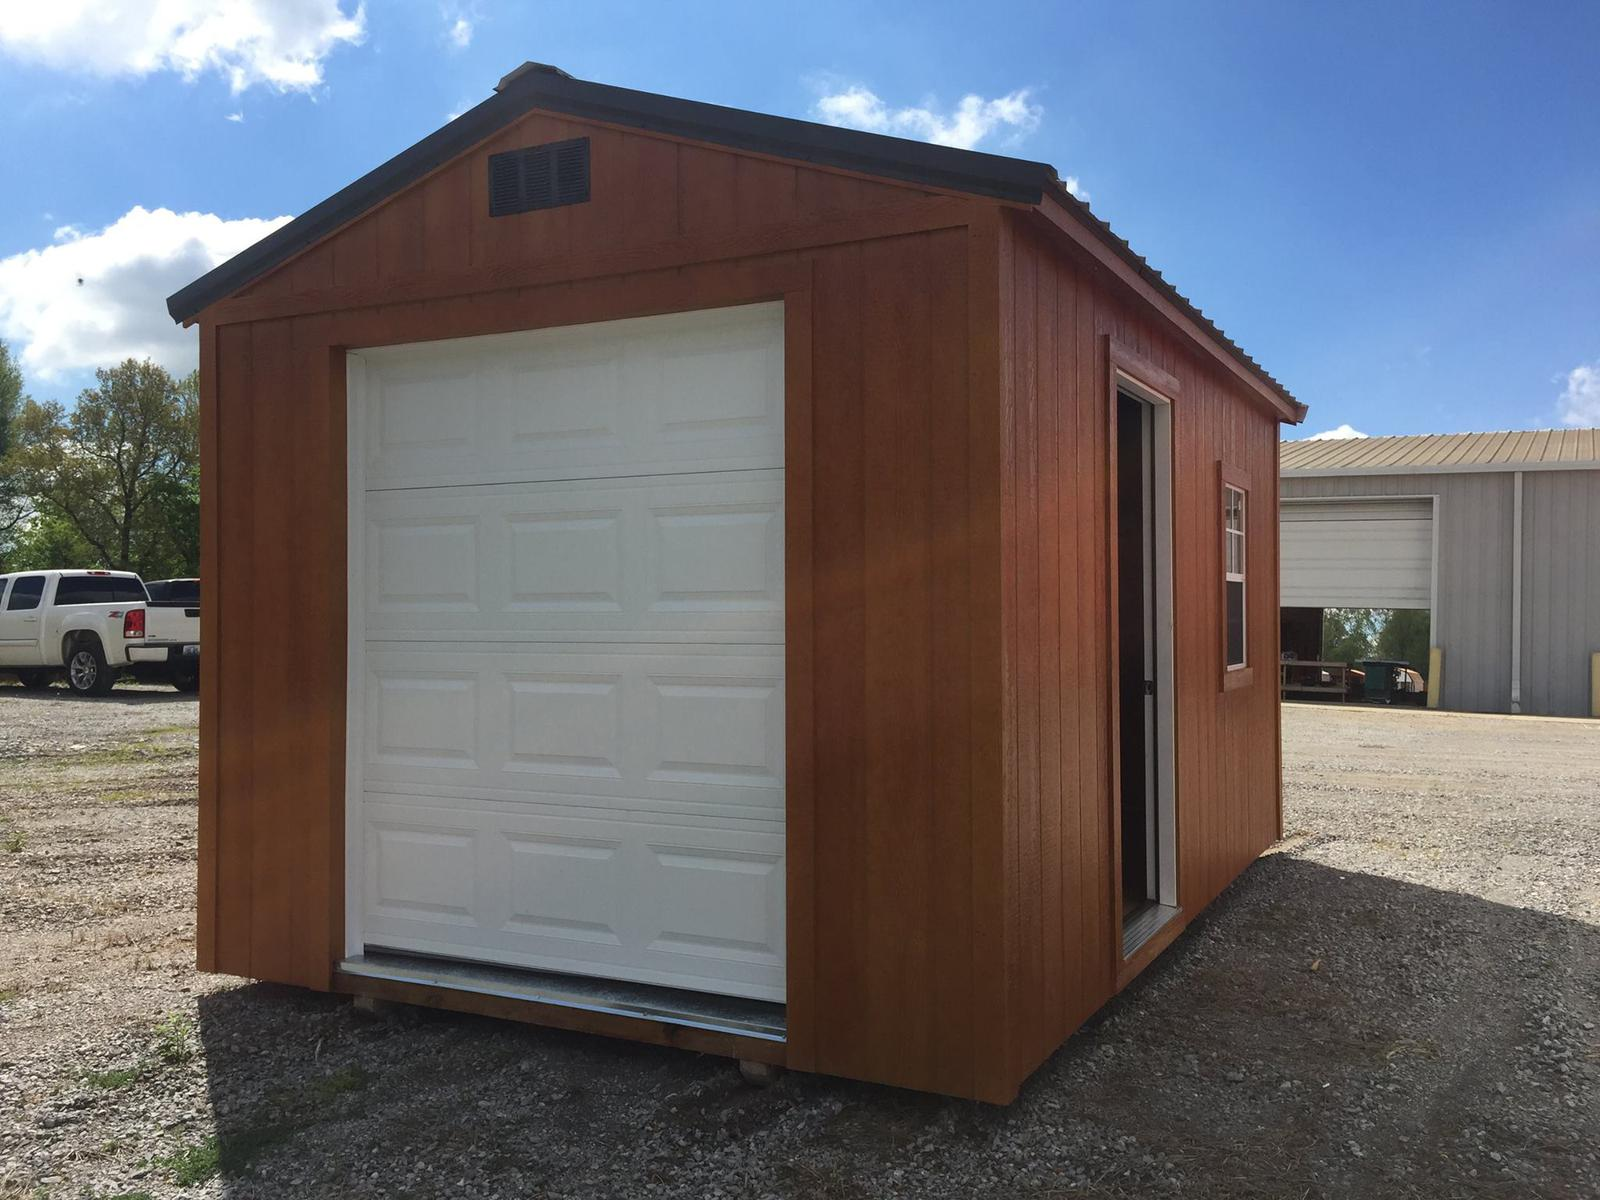 Express Storage Buildings Portable Garage - $115/Month for sale in ...